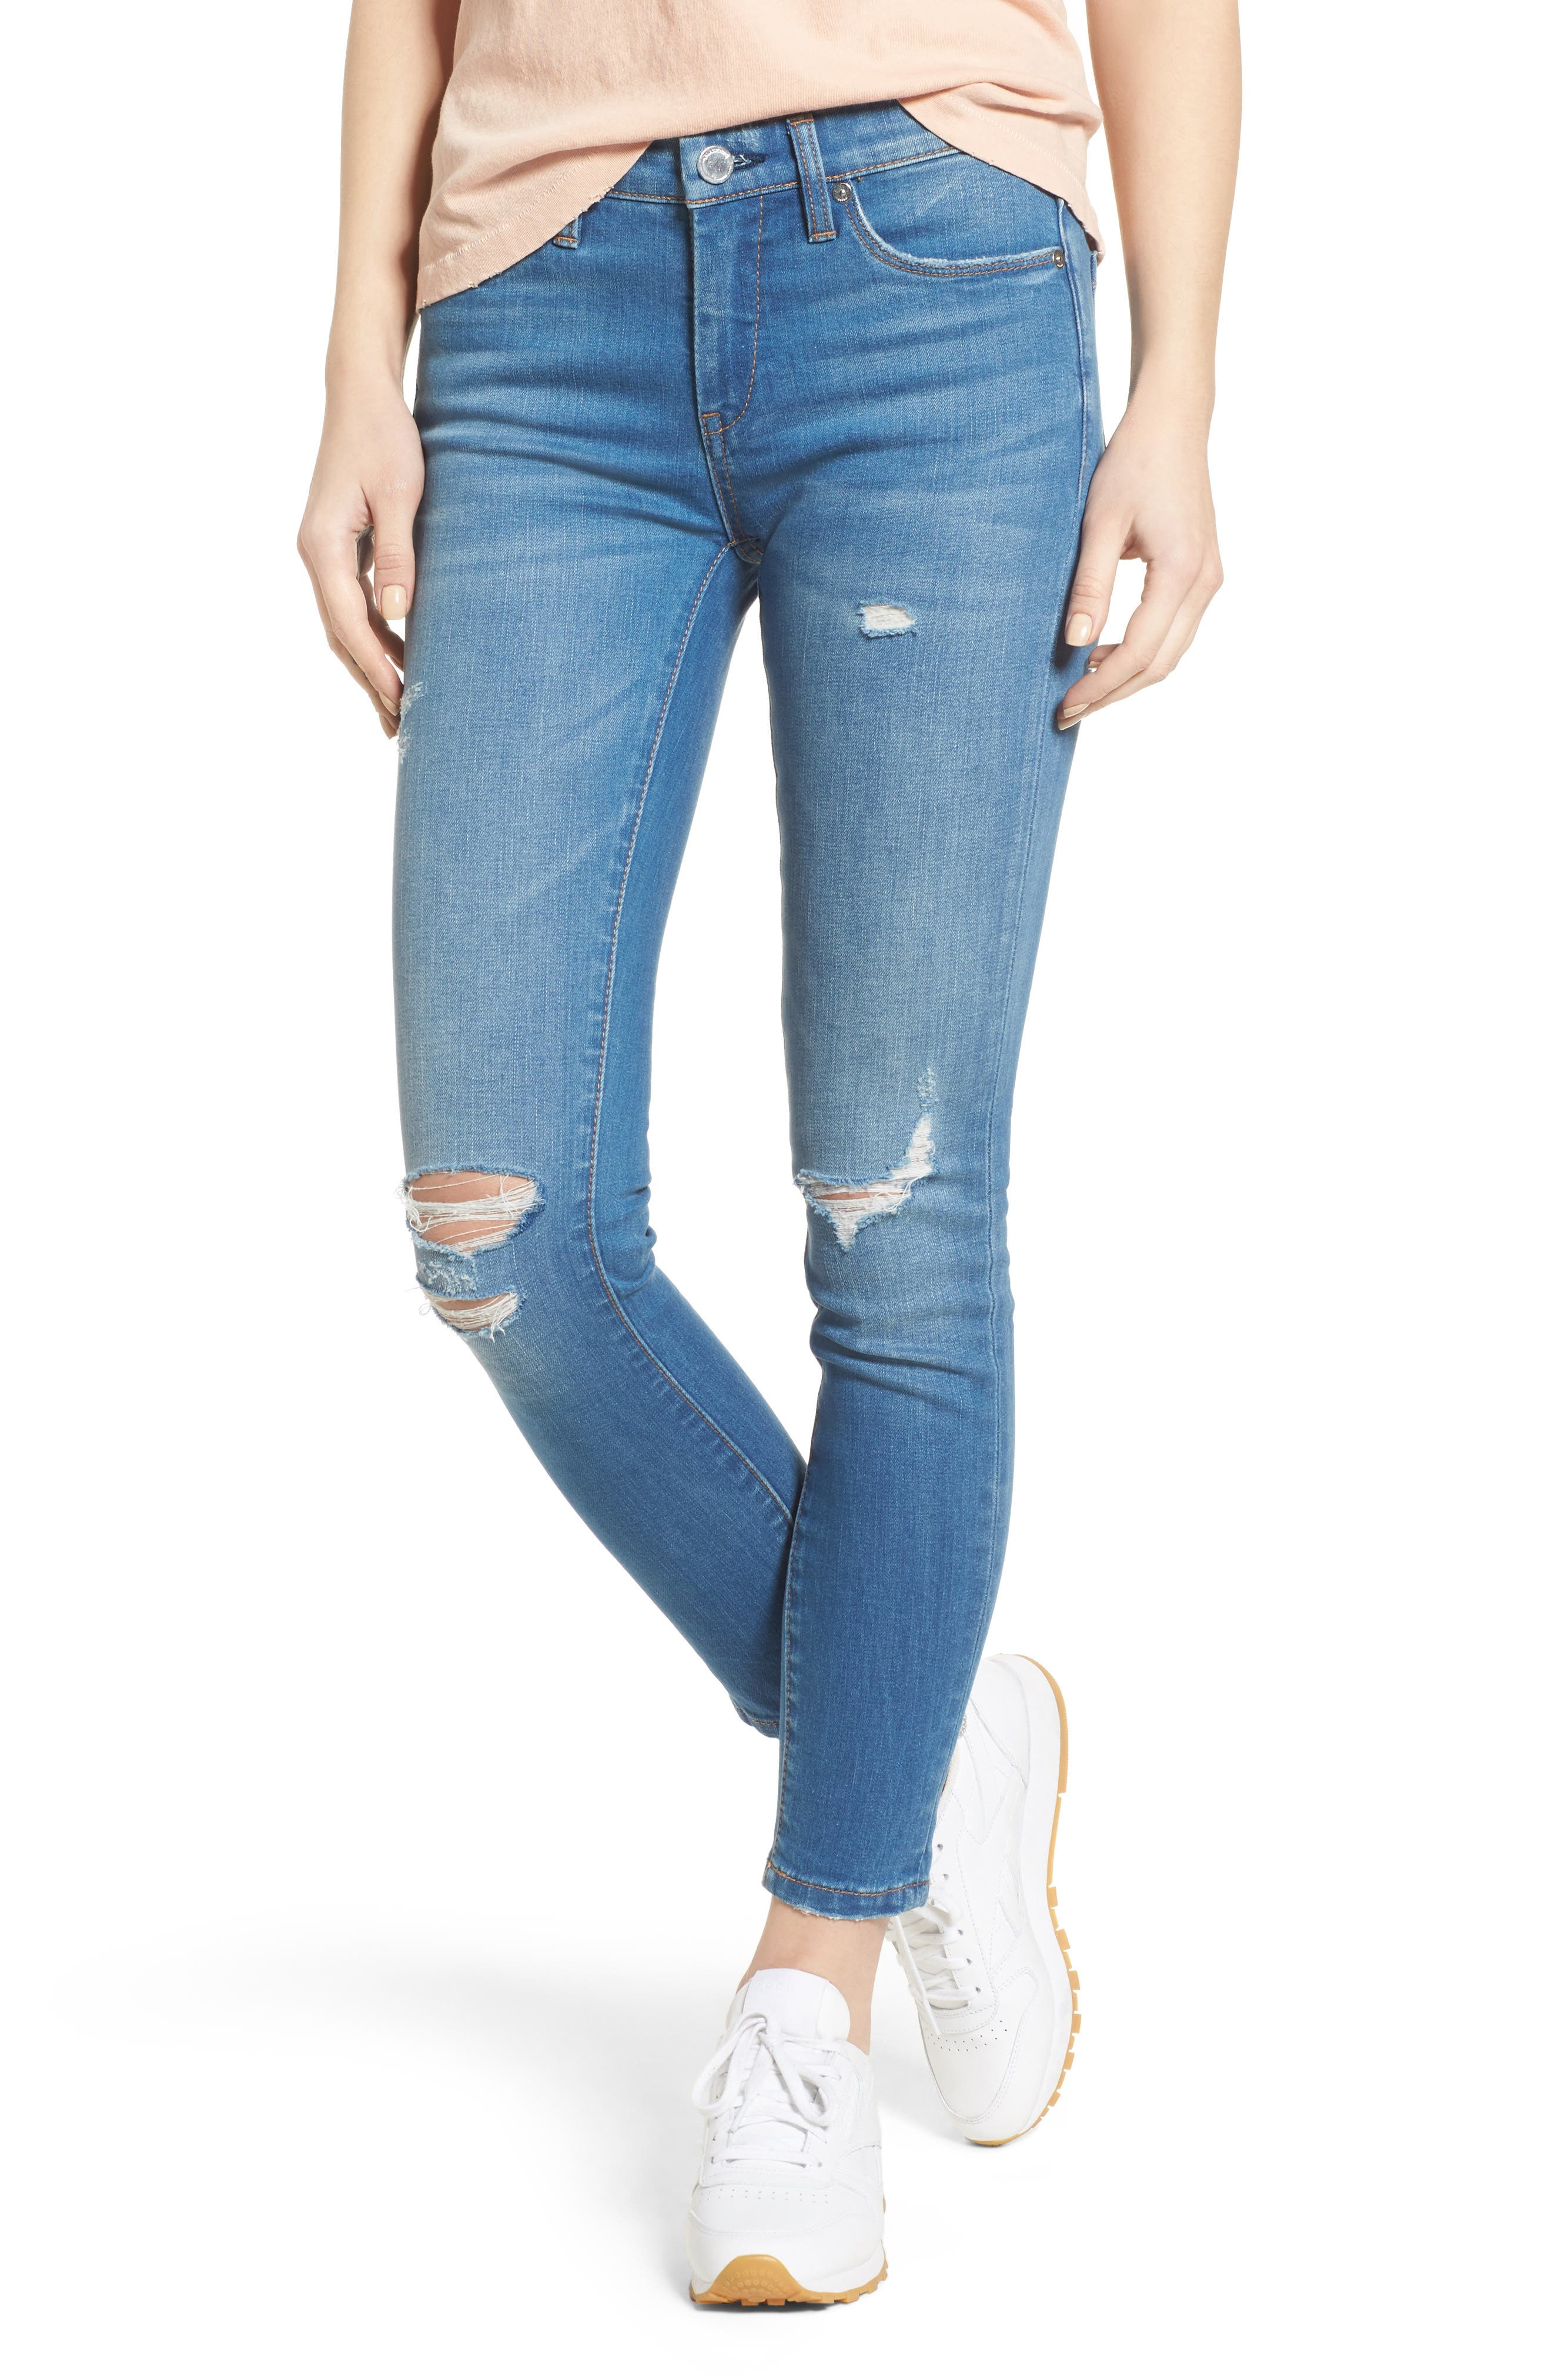 Find great deals on eBay for ankle skinny jeans. Shop with confidence.